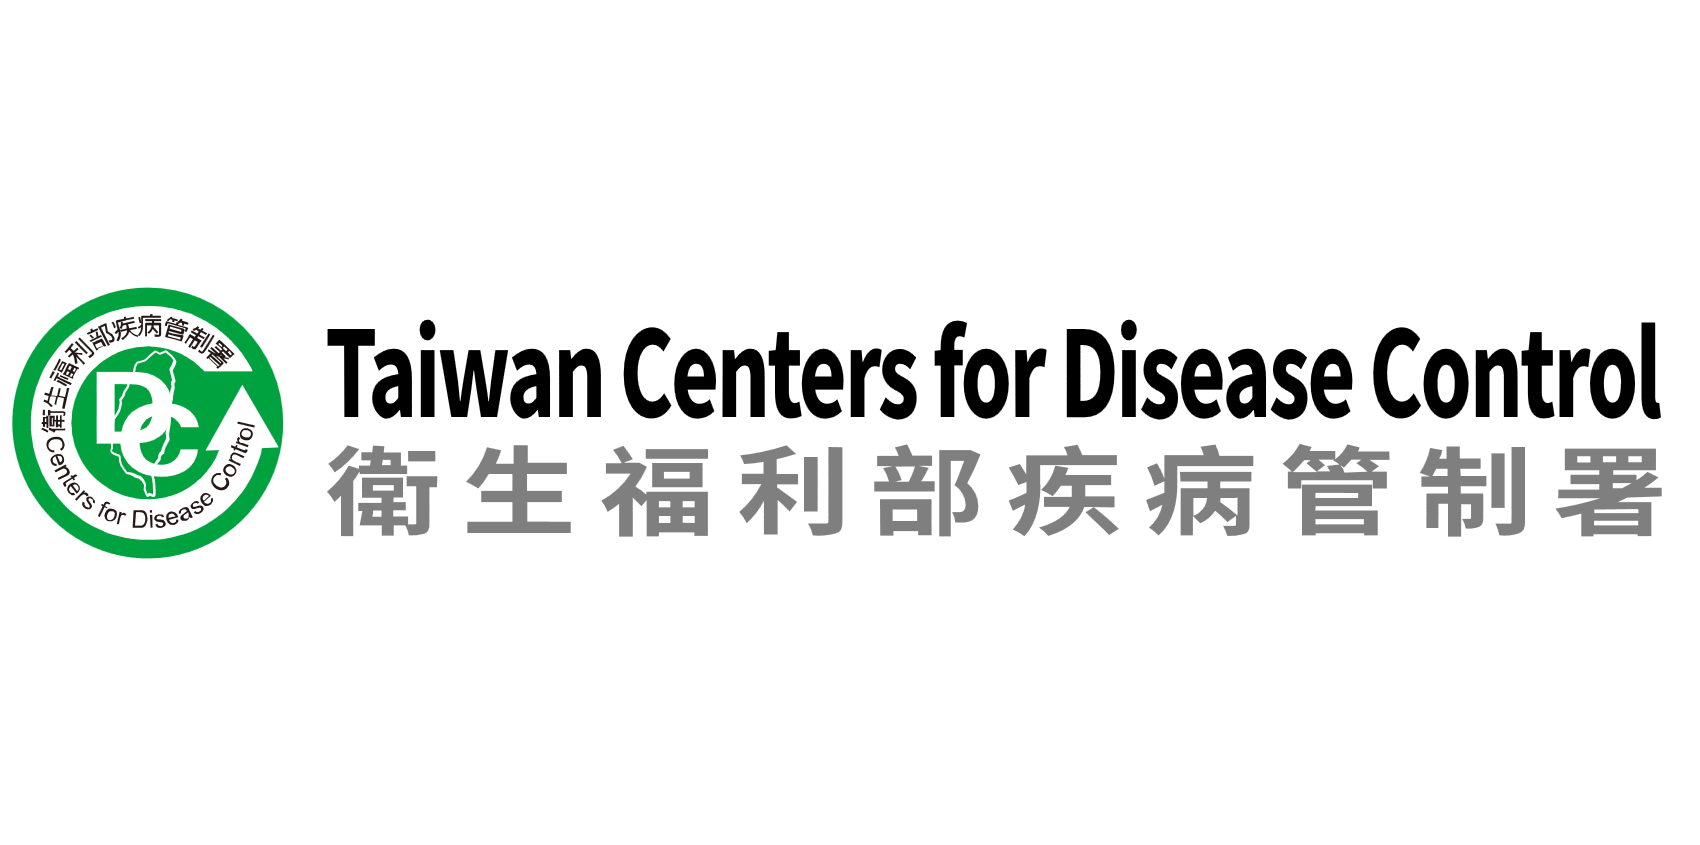 Taiwan Centers for Disease Control